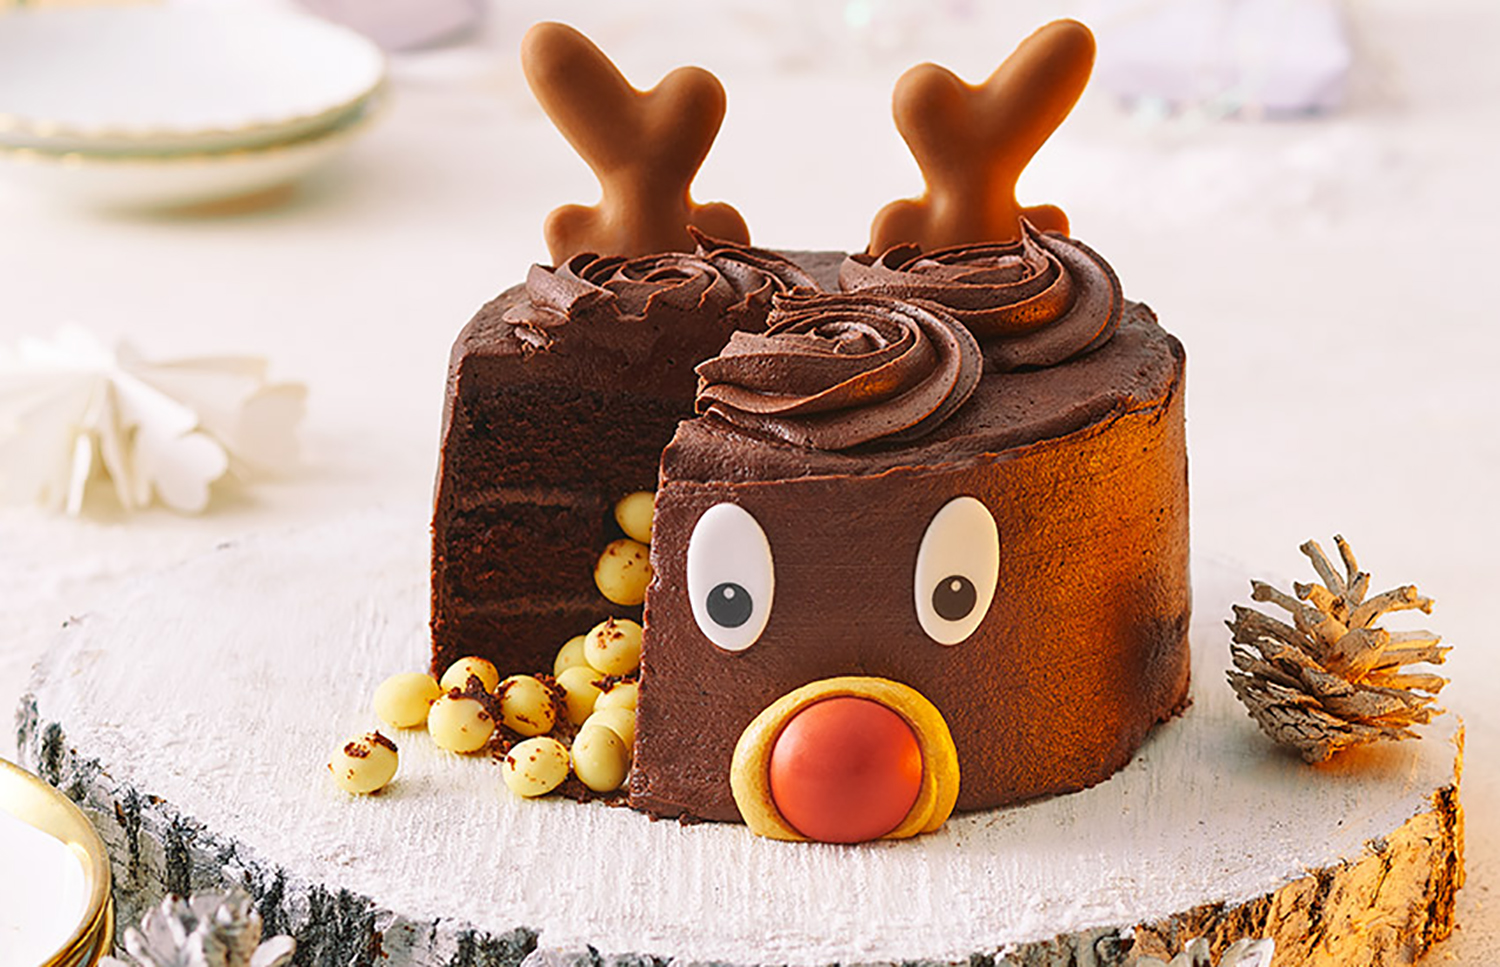 Sainsbury's Rudy the Reindeer chocolate cake